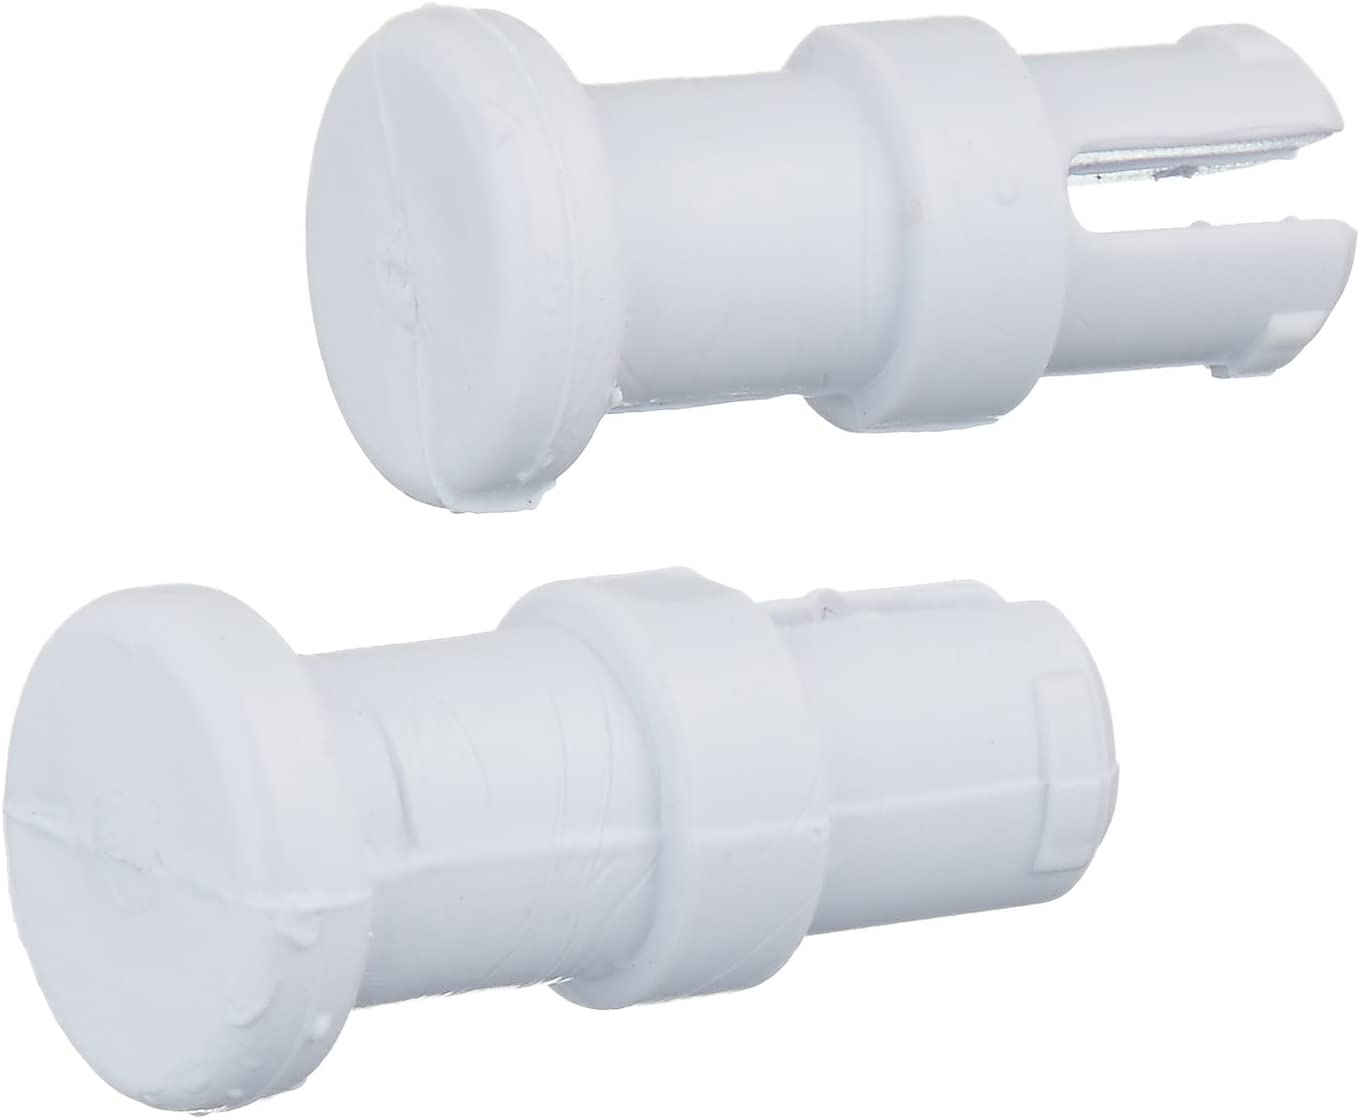 Pentair EU147 Vac Tube Posts Snap Replacement Automatic Pool and Spa Cleaner, Set of 2